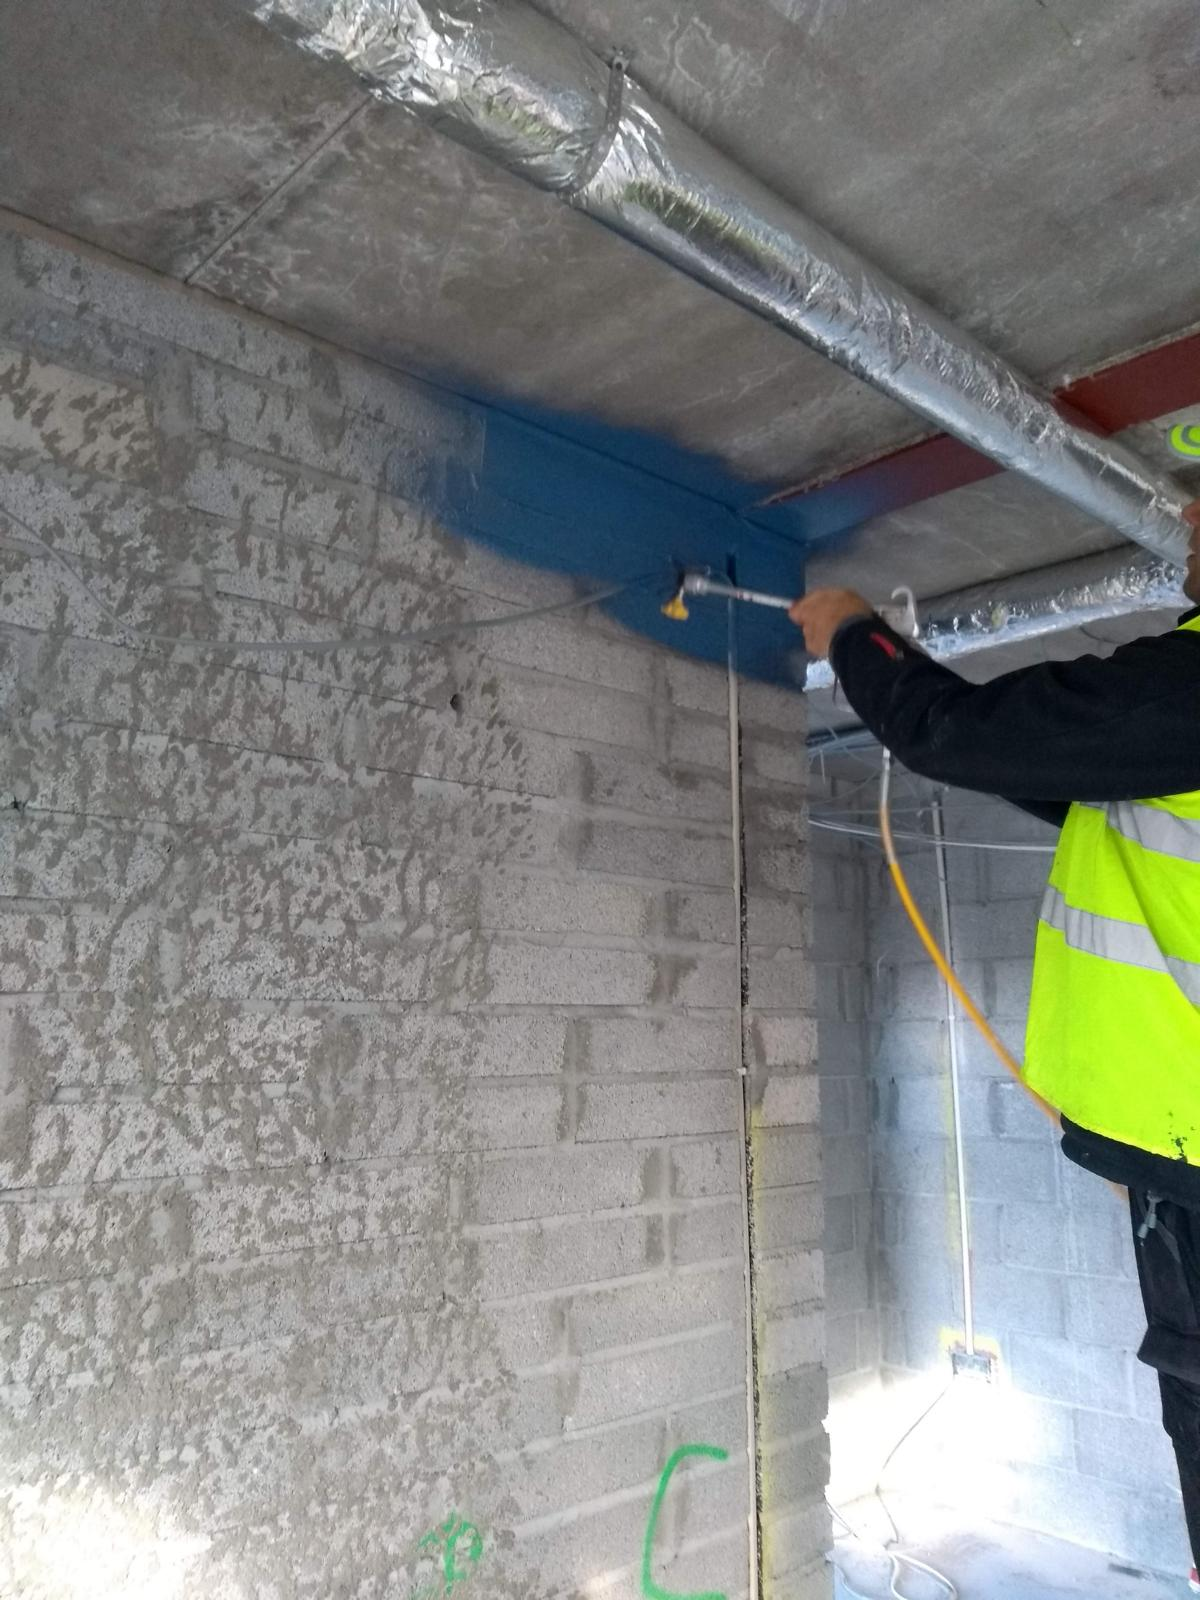 Sprayable Air Tight Paint for the perimeter area between ducon slab and suspended ceiling